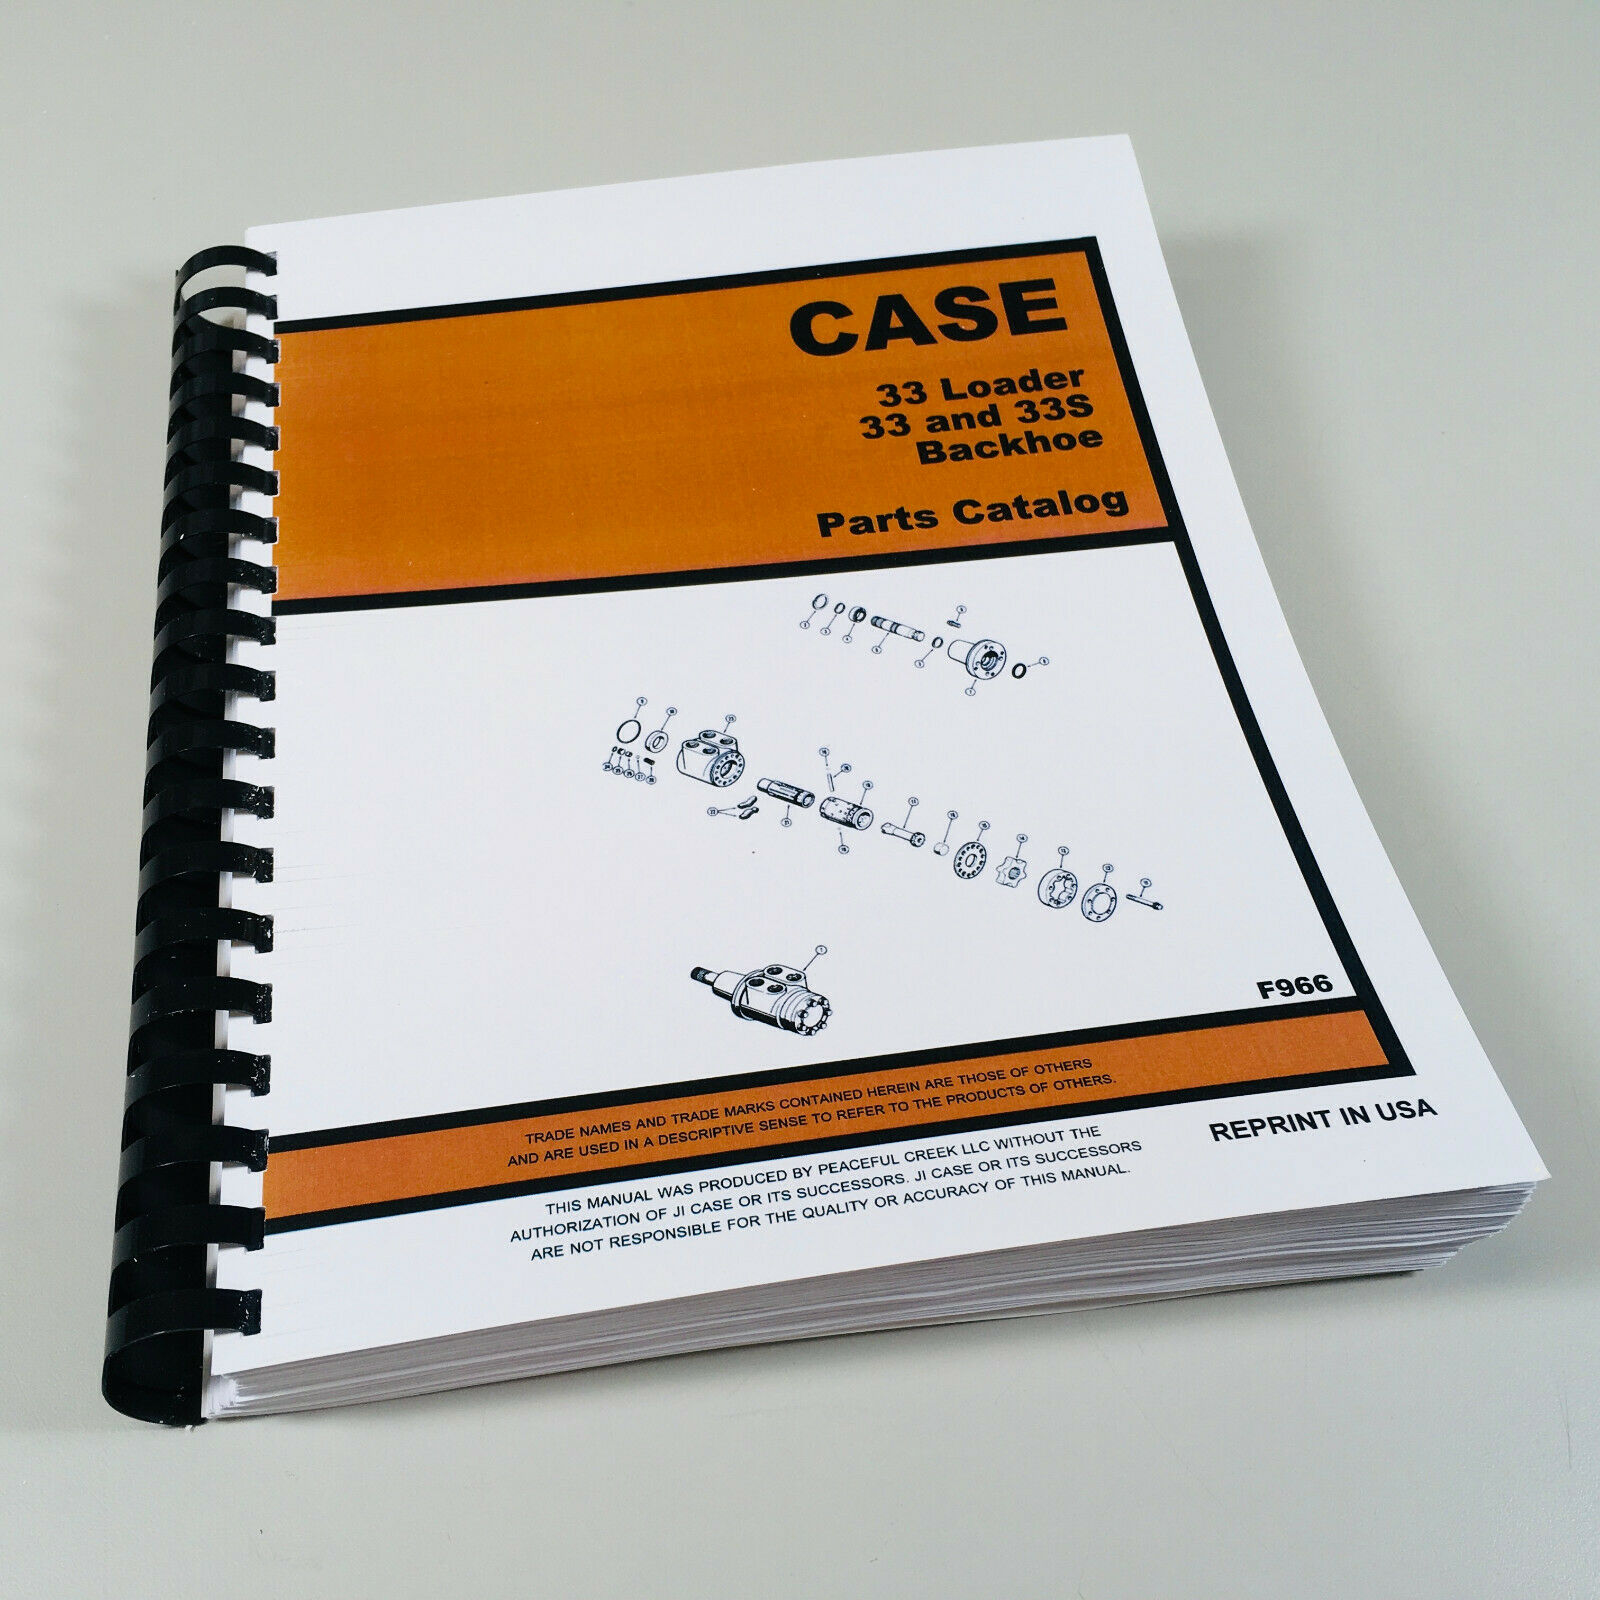 J I Case 33 33 S Backhoe 33 Loader For 580 Ck Tractor Parts Catalog Manual  B 1 of 5FREE Shipping ...